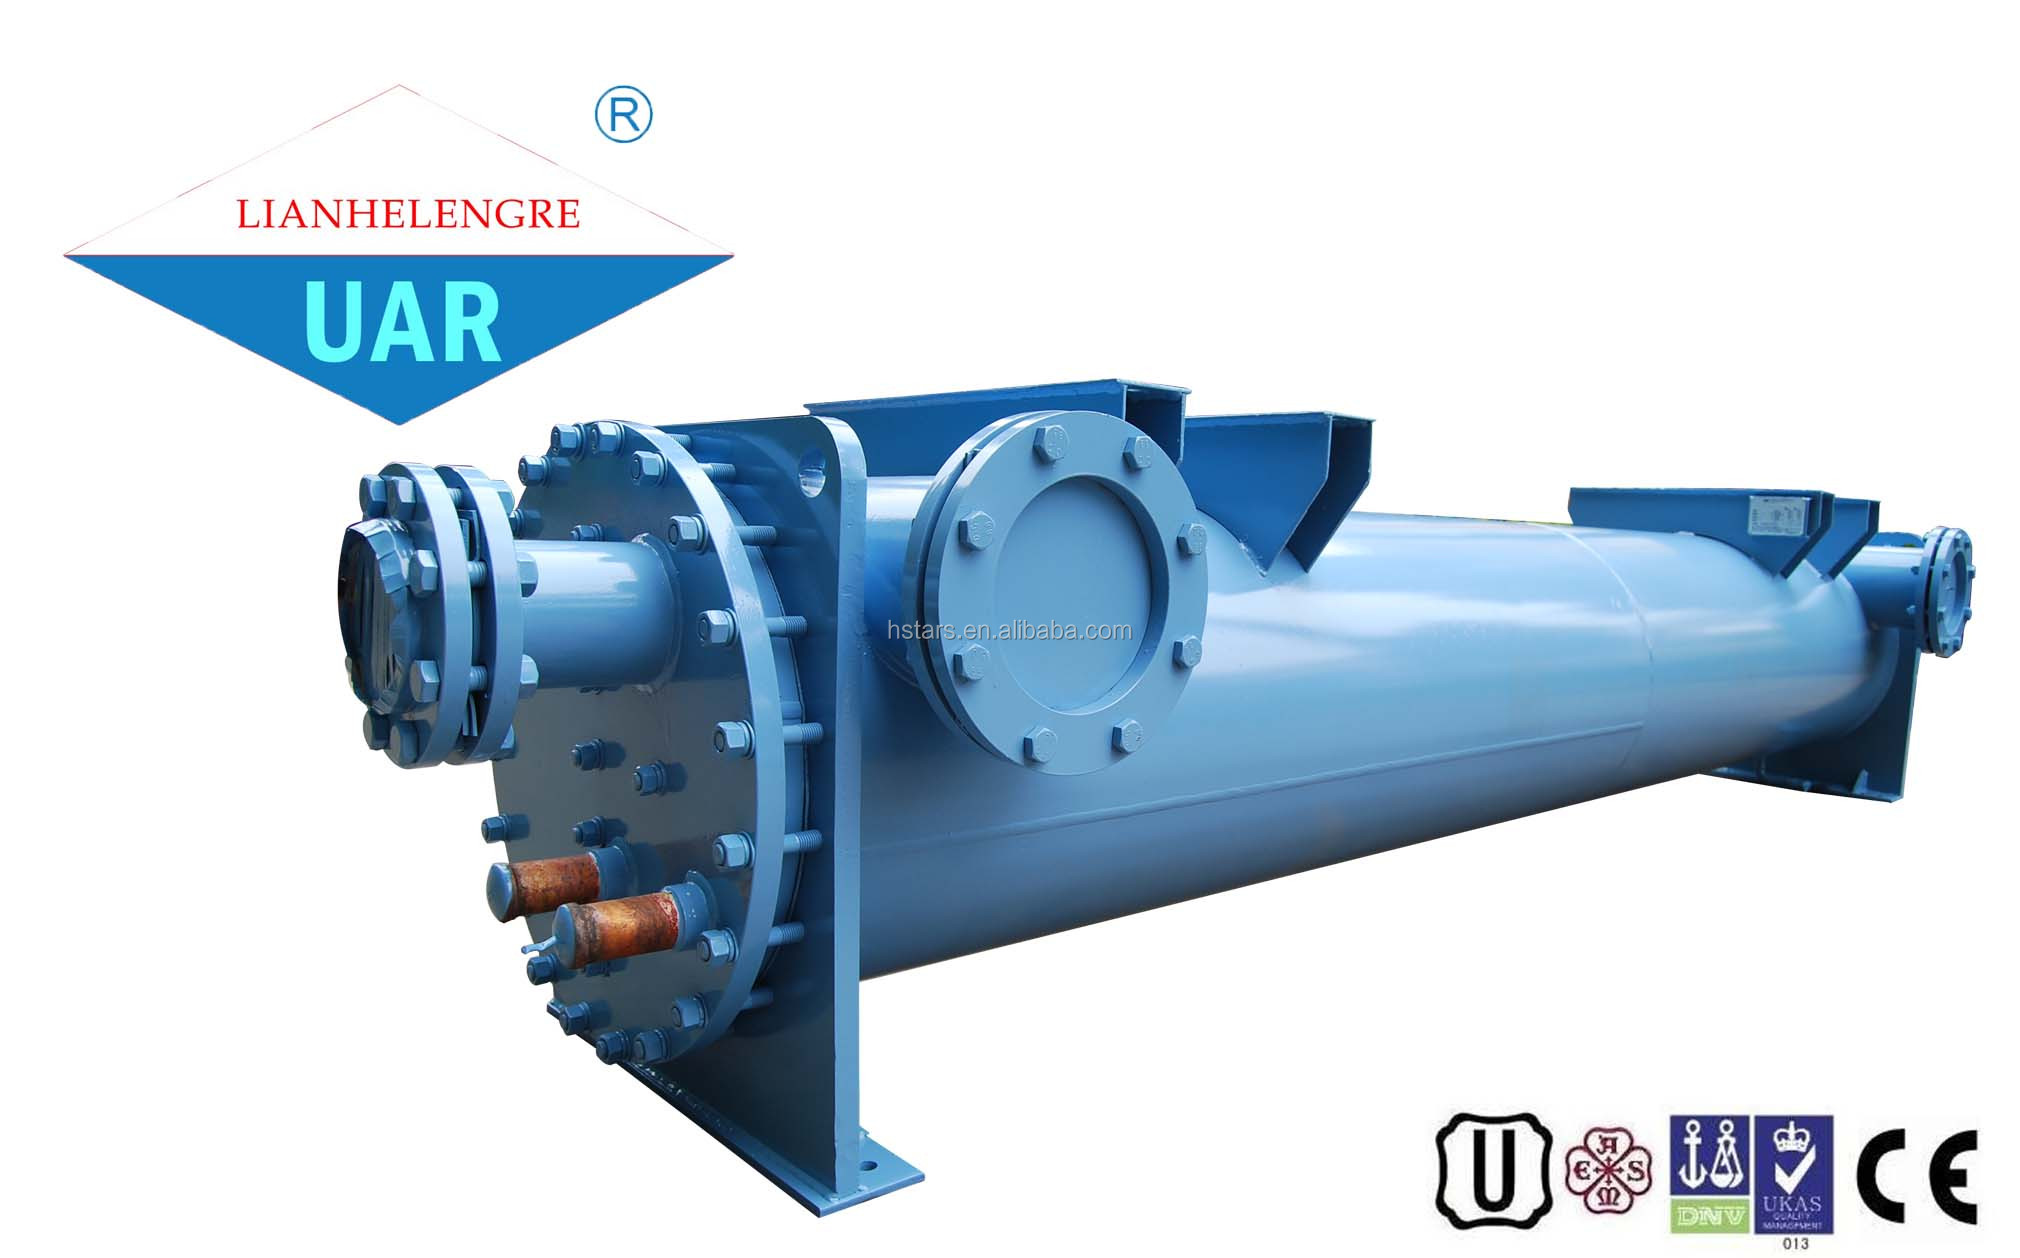 Thermal Exchanger Wholesale, Exchang Suppliers - Alibaba